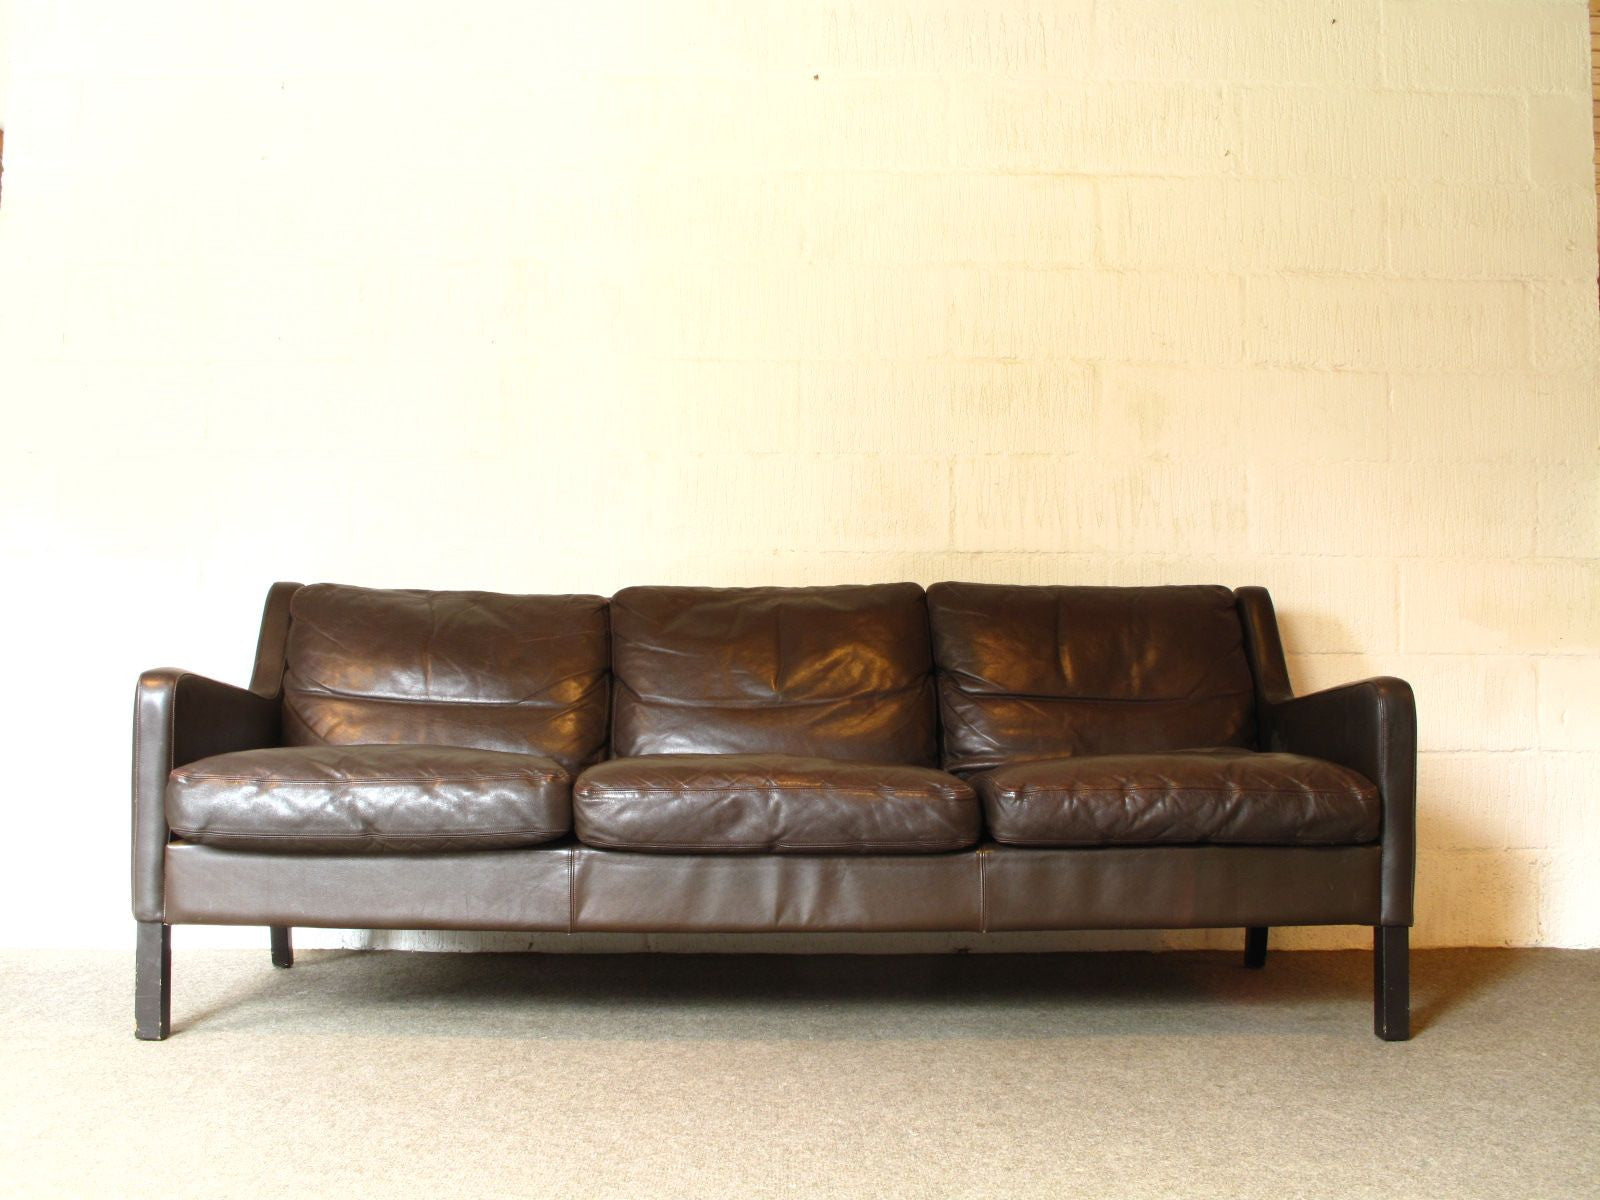 Three seat leather sofa by G. Thams